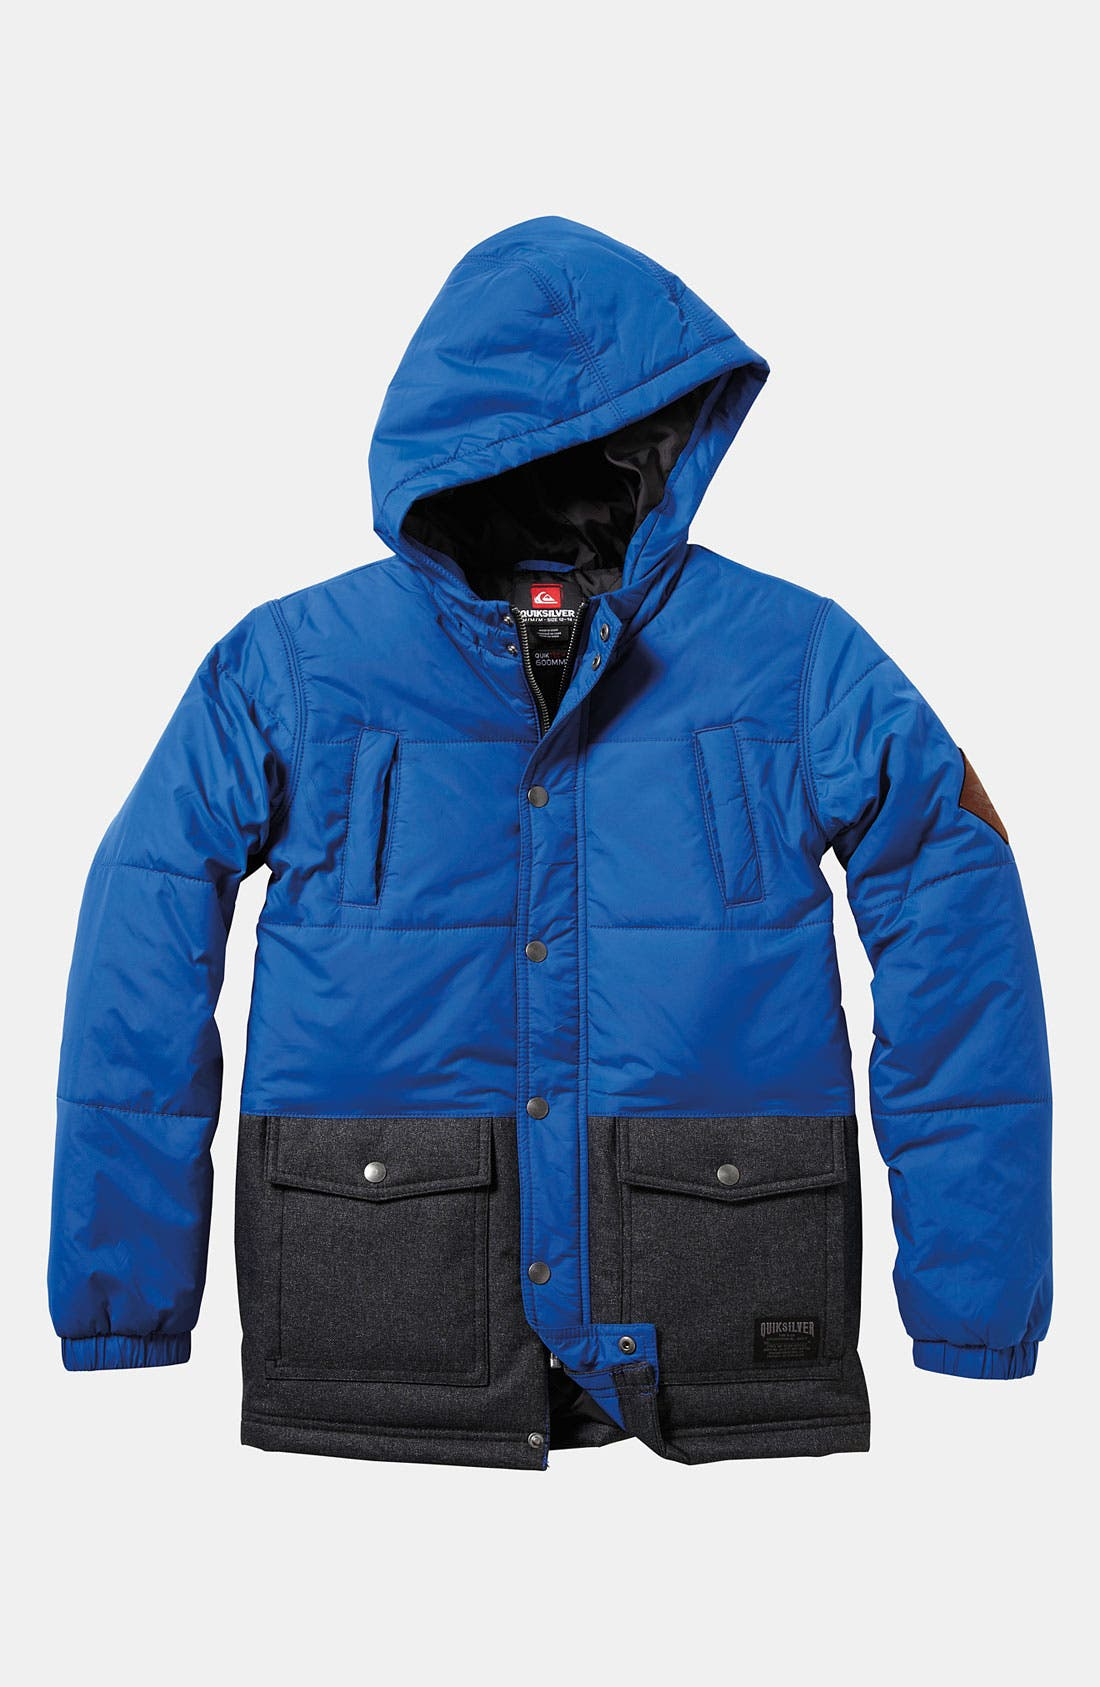 Alternate Image 1 Selected - Quiksilver 'Side Swipe' Jacket (Big Boys)